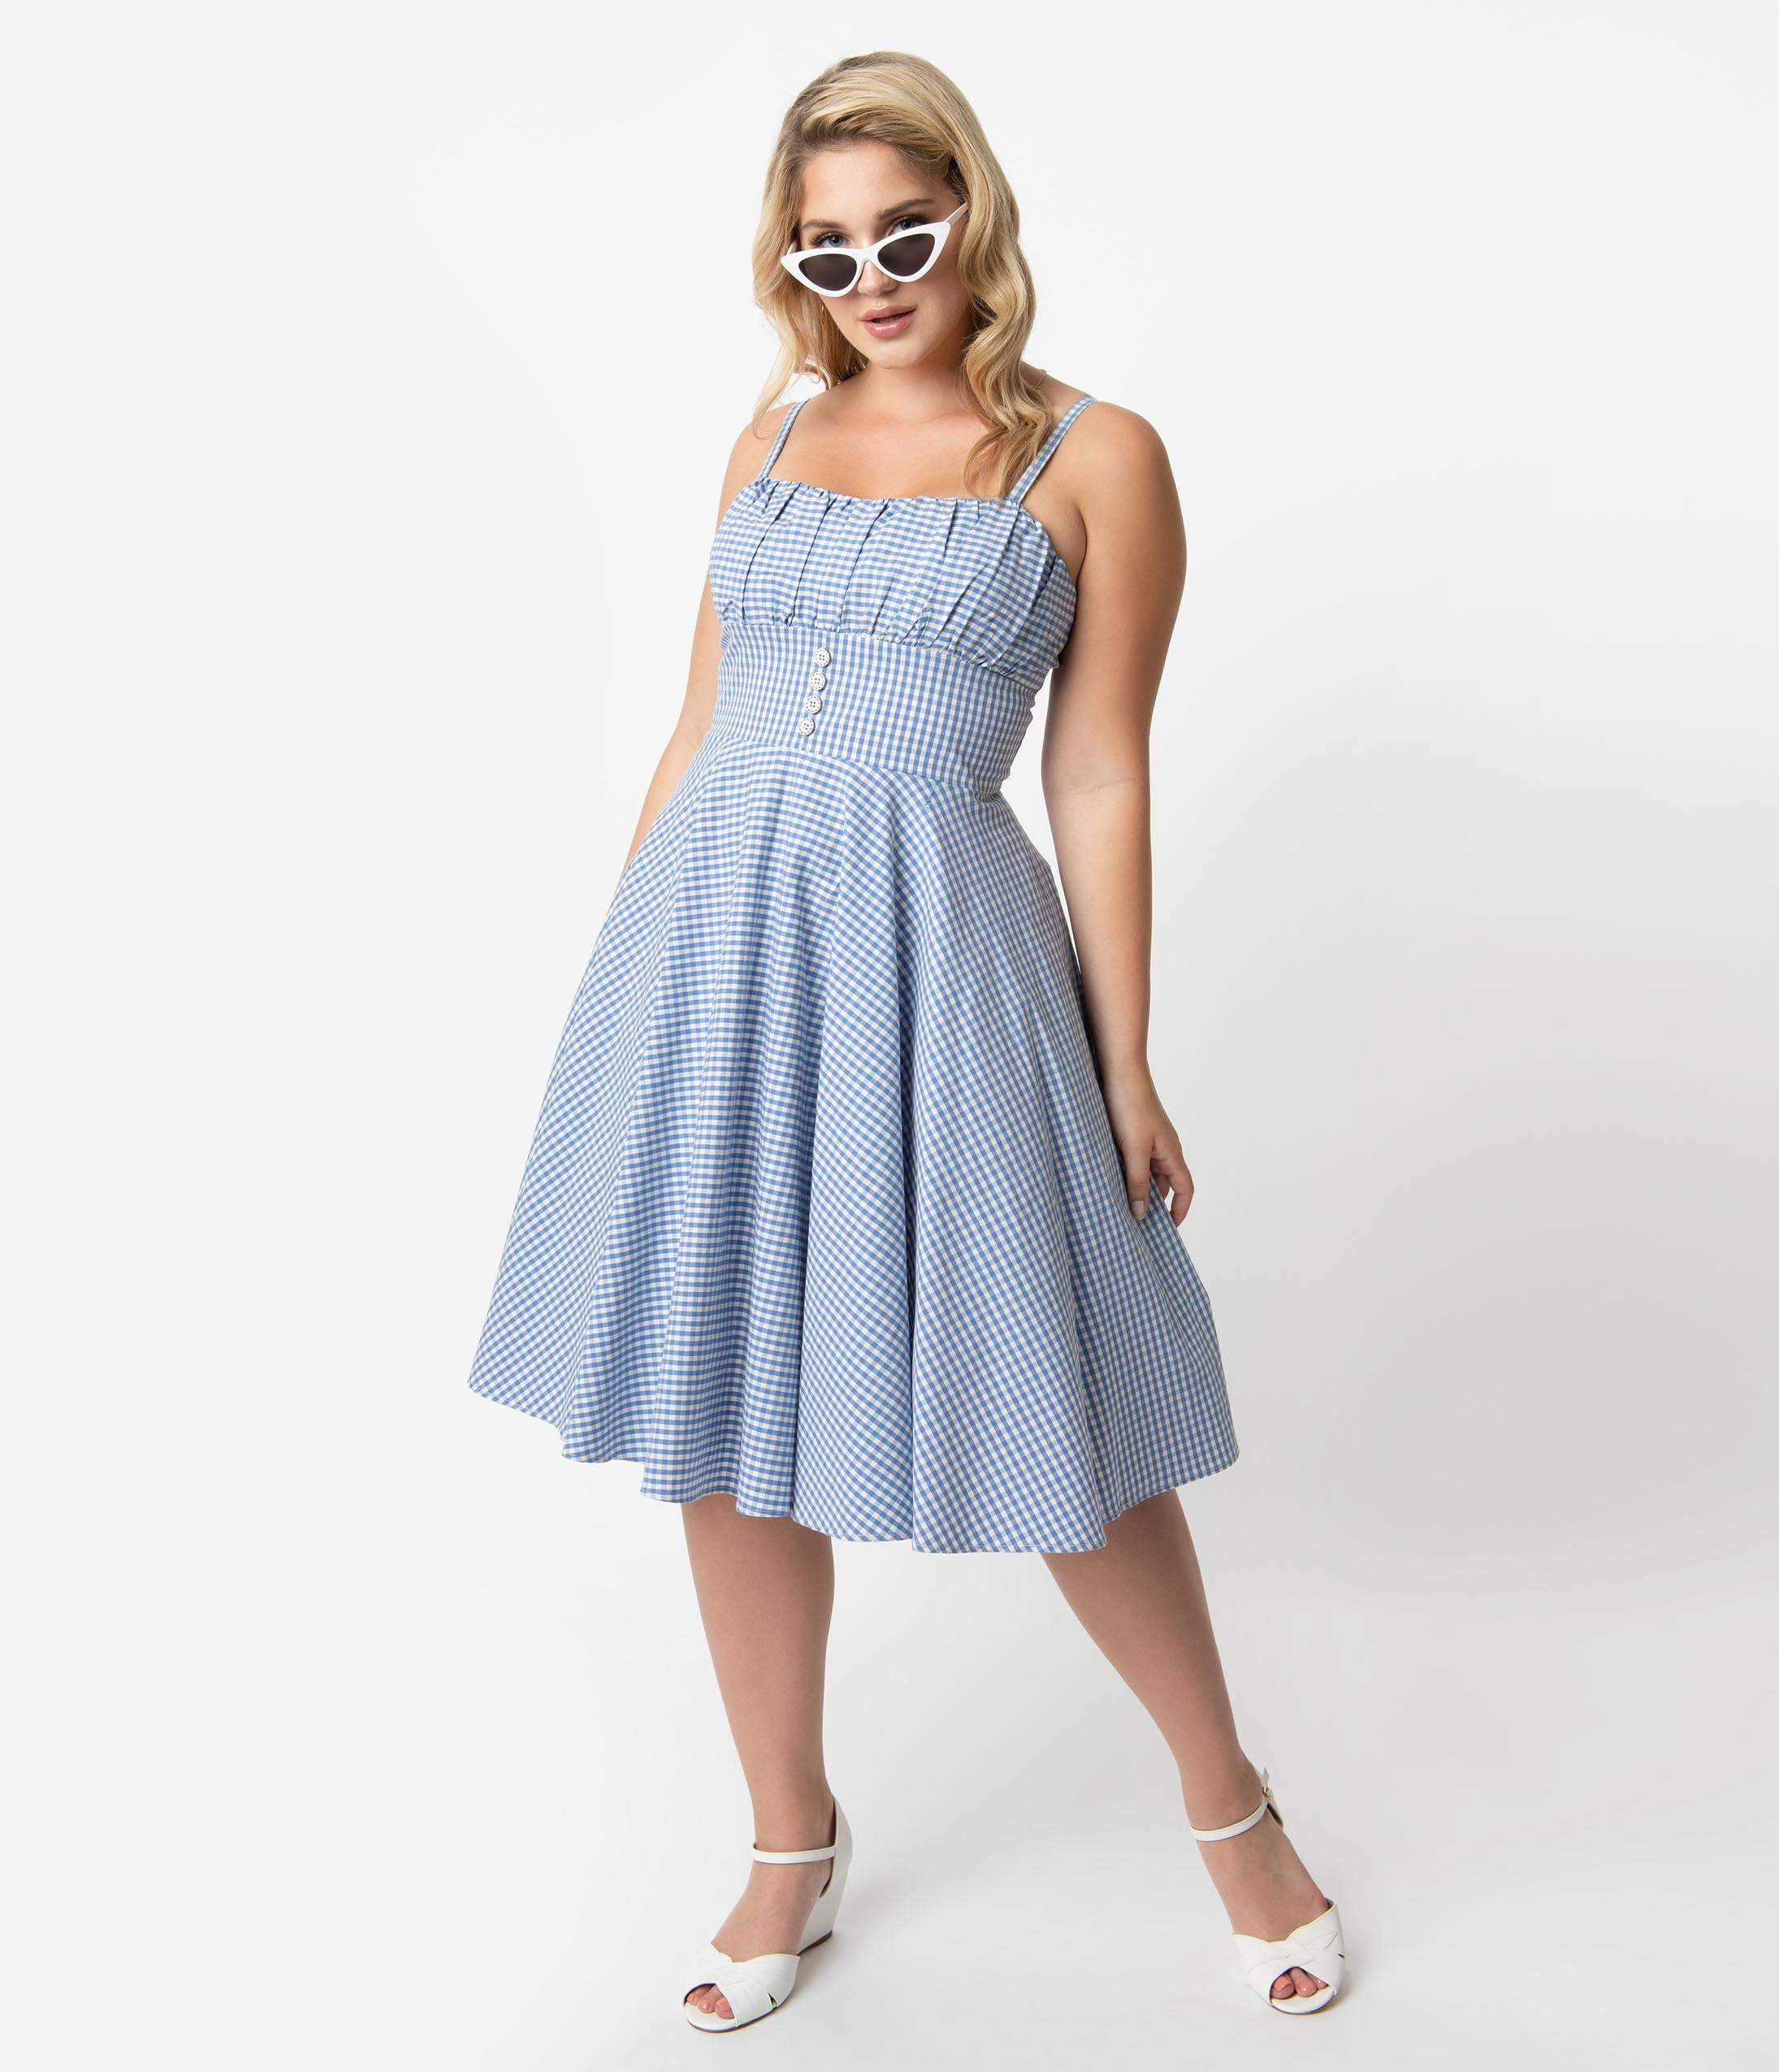 1950s Plus Size Dresses, Swing Dresses Plus Size Retro Style Light Blue  White Gingham Cotton Melissendre Swing Dress $78.00 AT vintagedancer.com